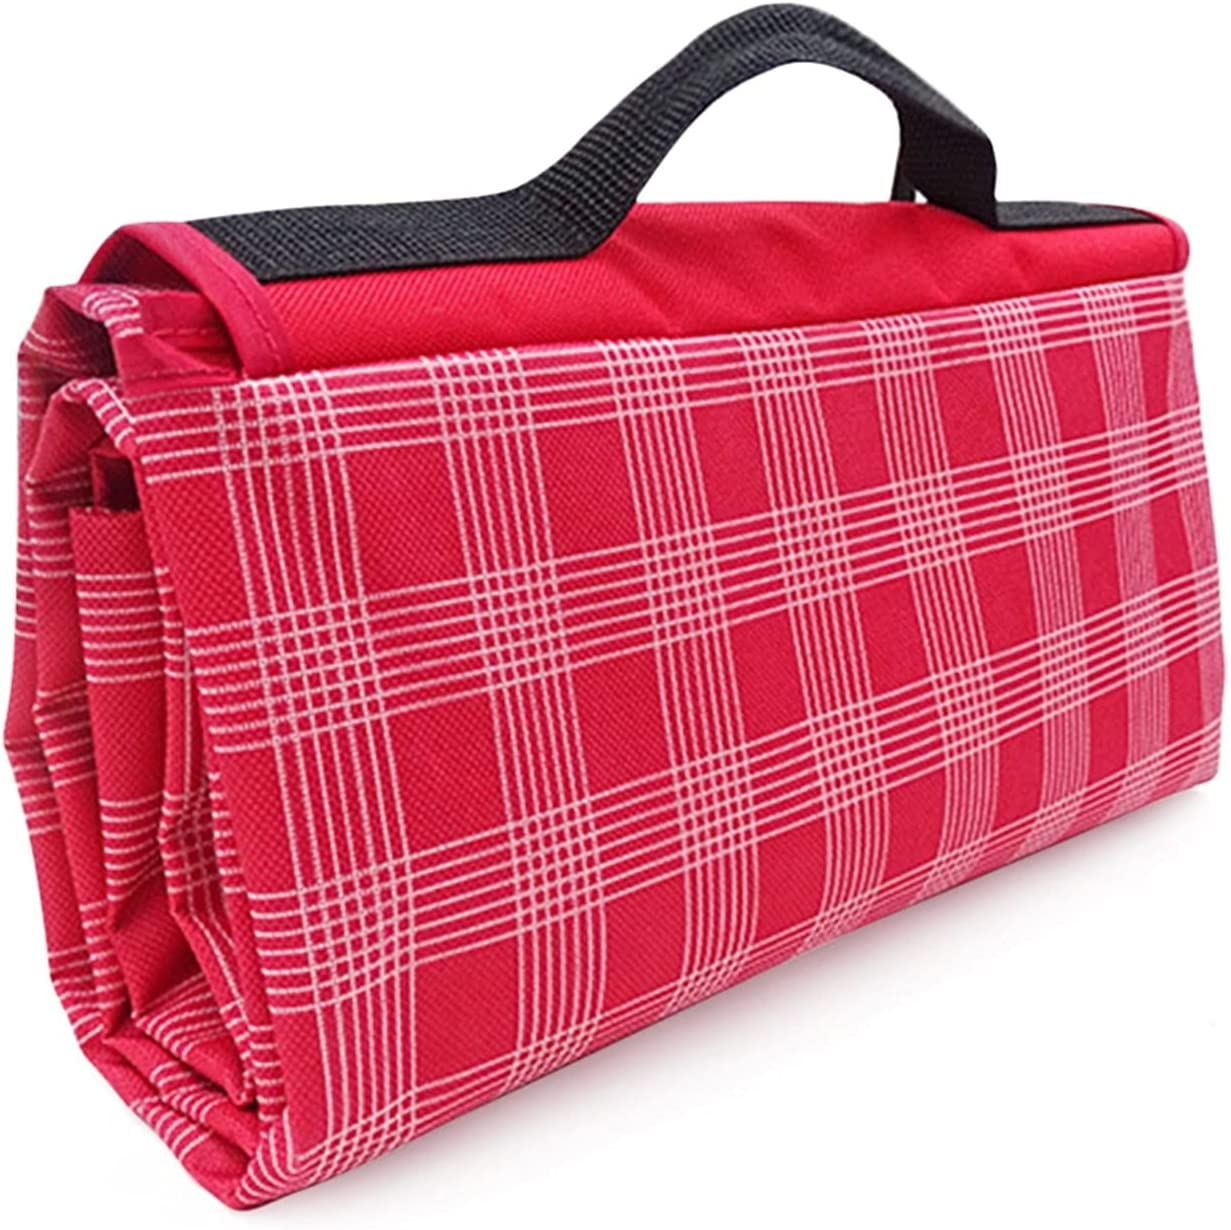 HEHXKJ Picnic depot Blanket excellence Red White Outdoor Plaid Waterproo Foldable